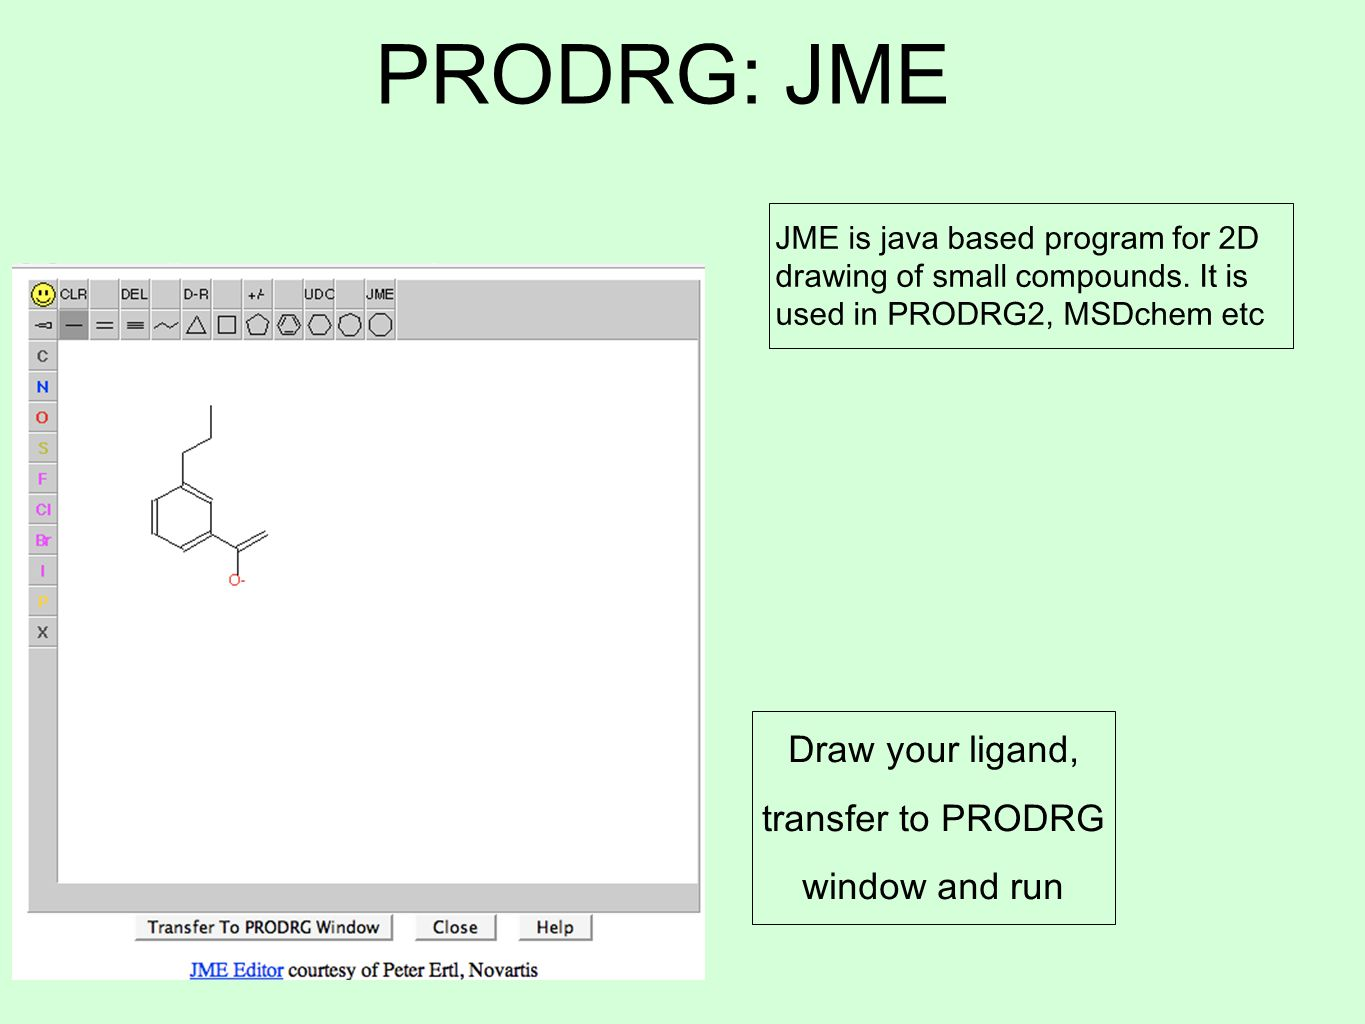 PRODRG: JME Draw your ligand, transfer to PRODRG window and run JME is java based program for 2D drawing of small compounds. It is used in PRODRG2, MS